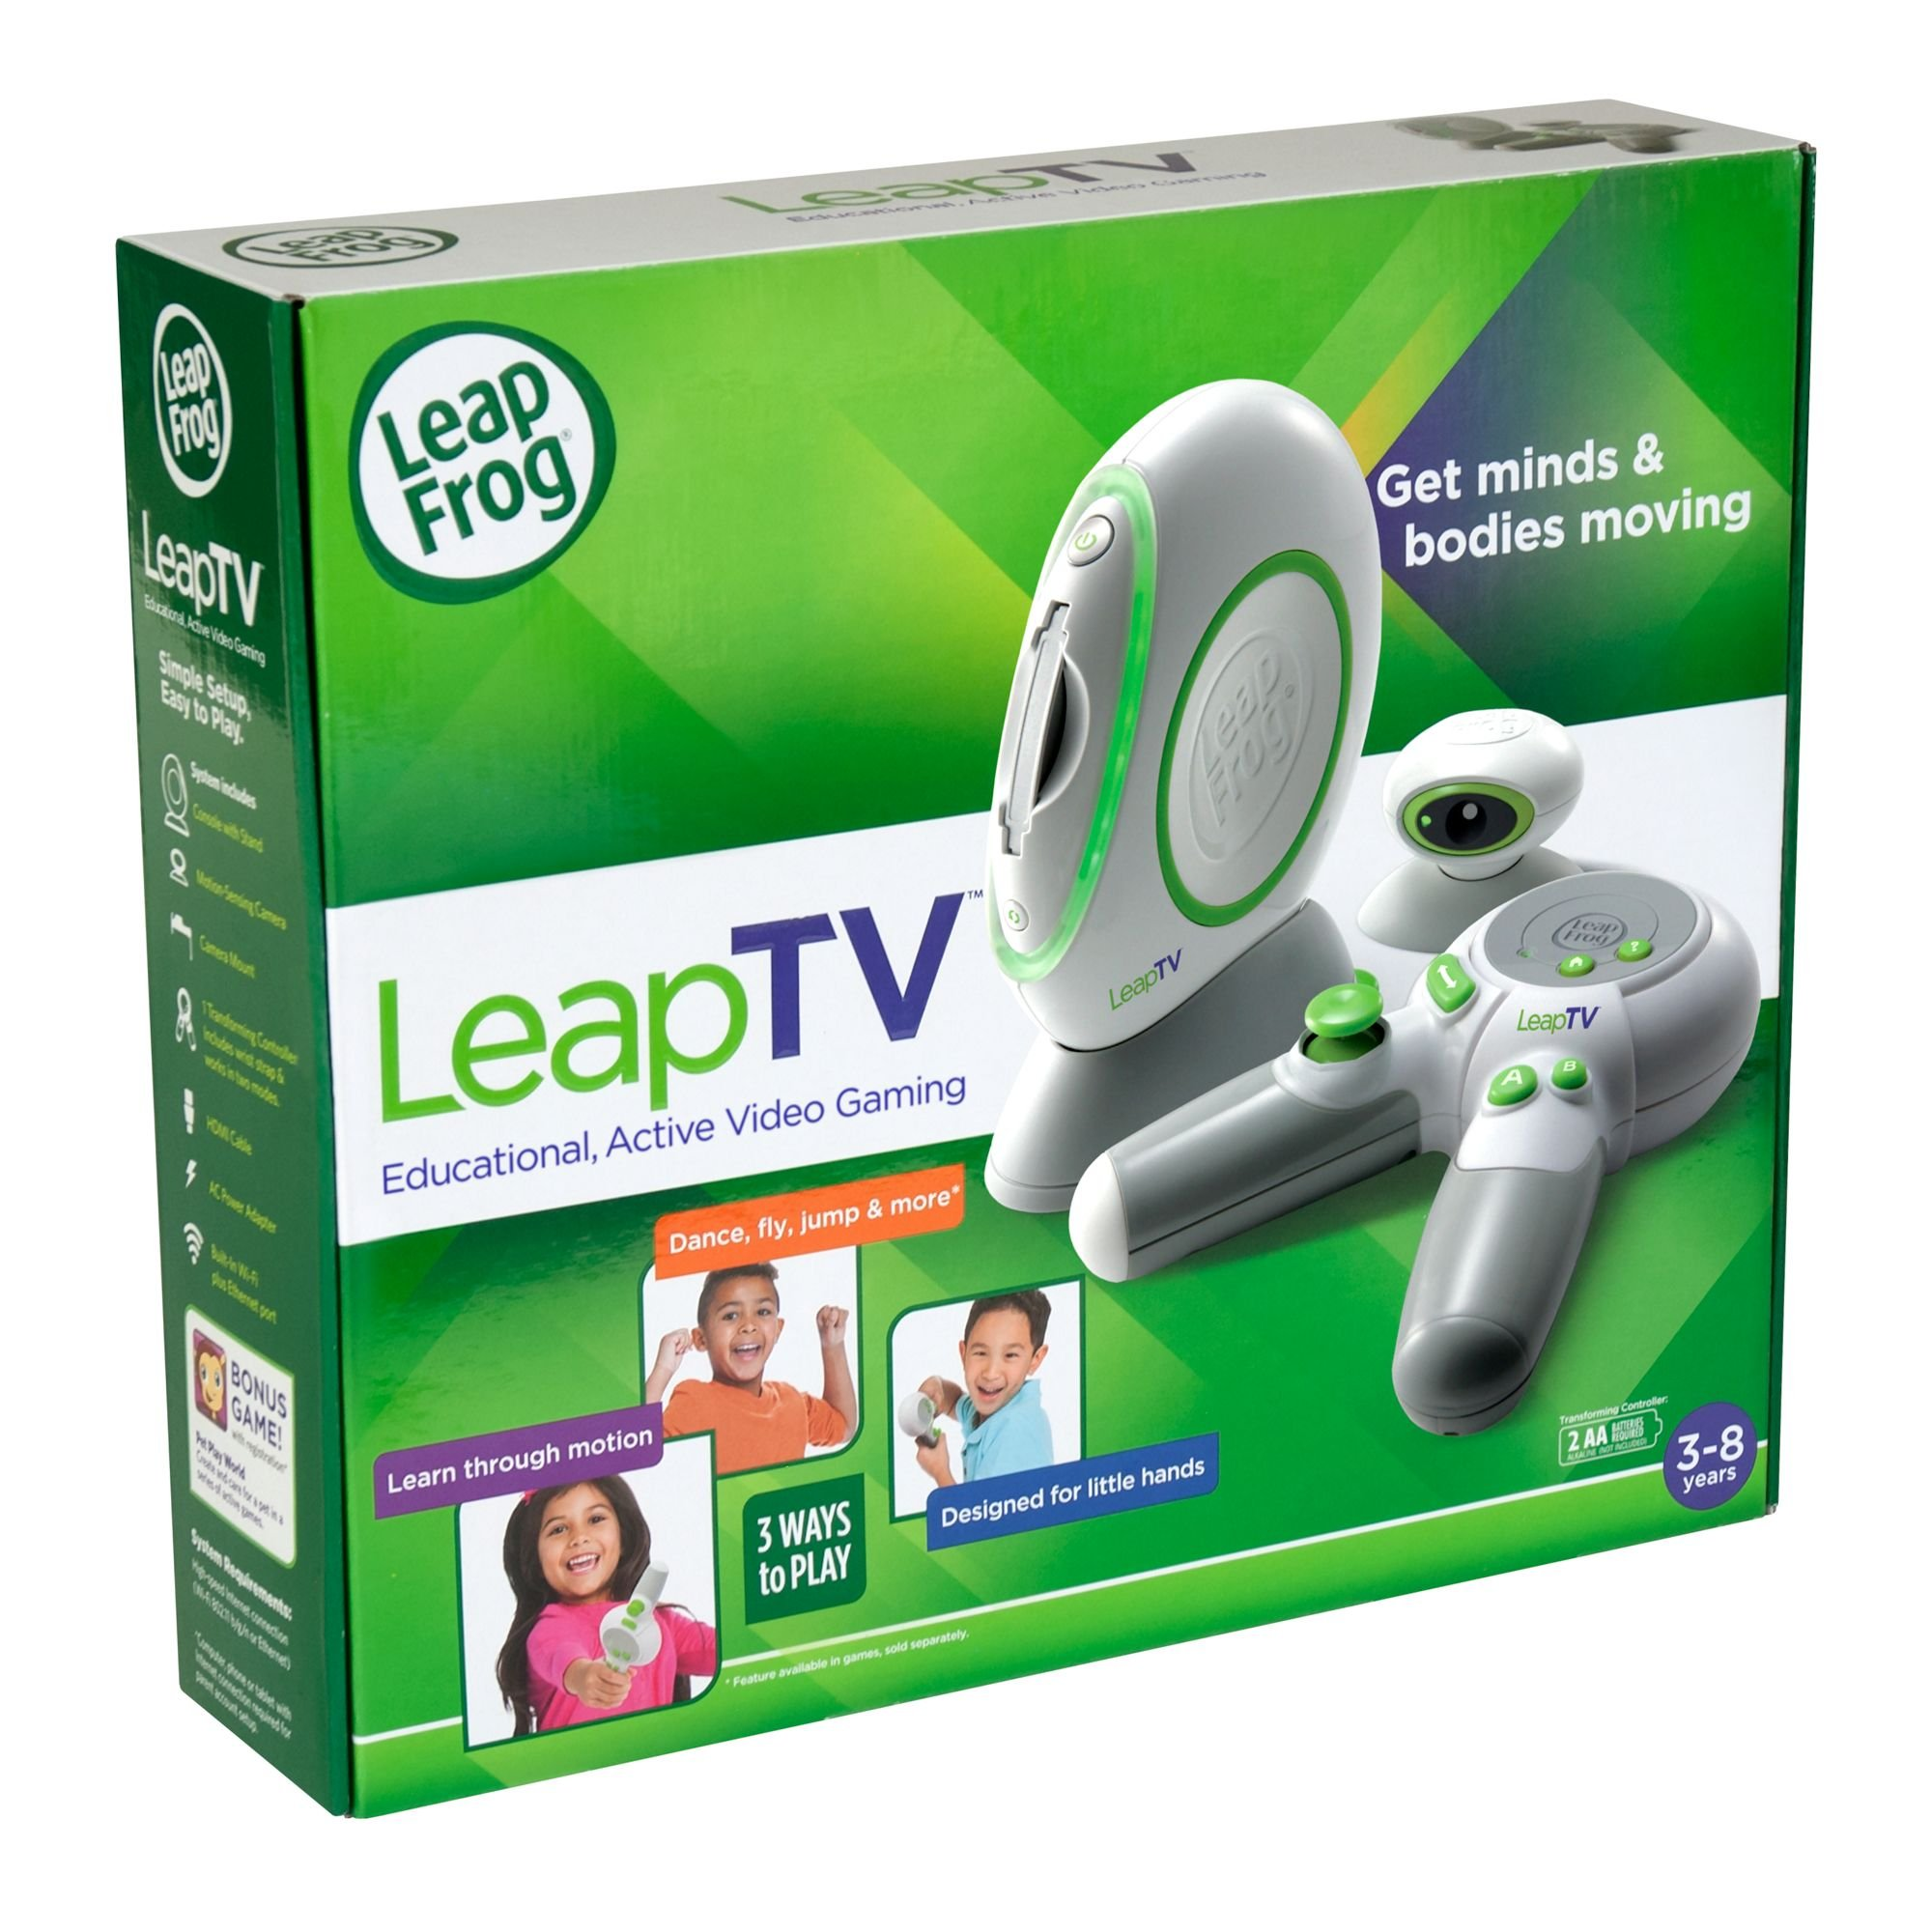 LeapFrog LeapTV Educational Gaming System(Discontinued by manufacturer) by LeapFrog (Image #17)